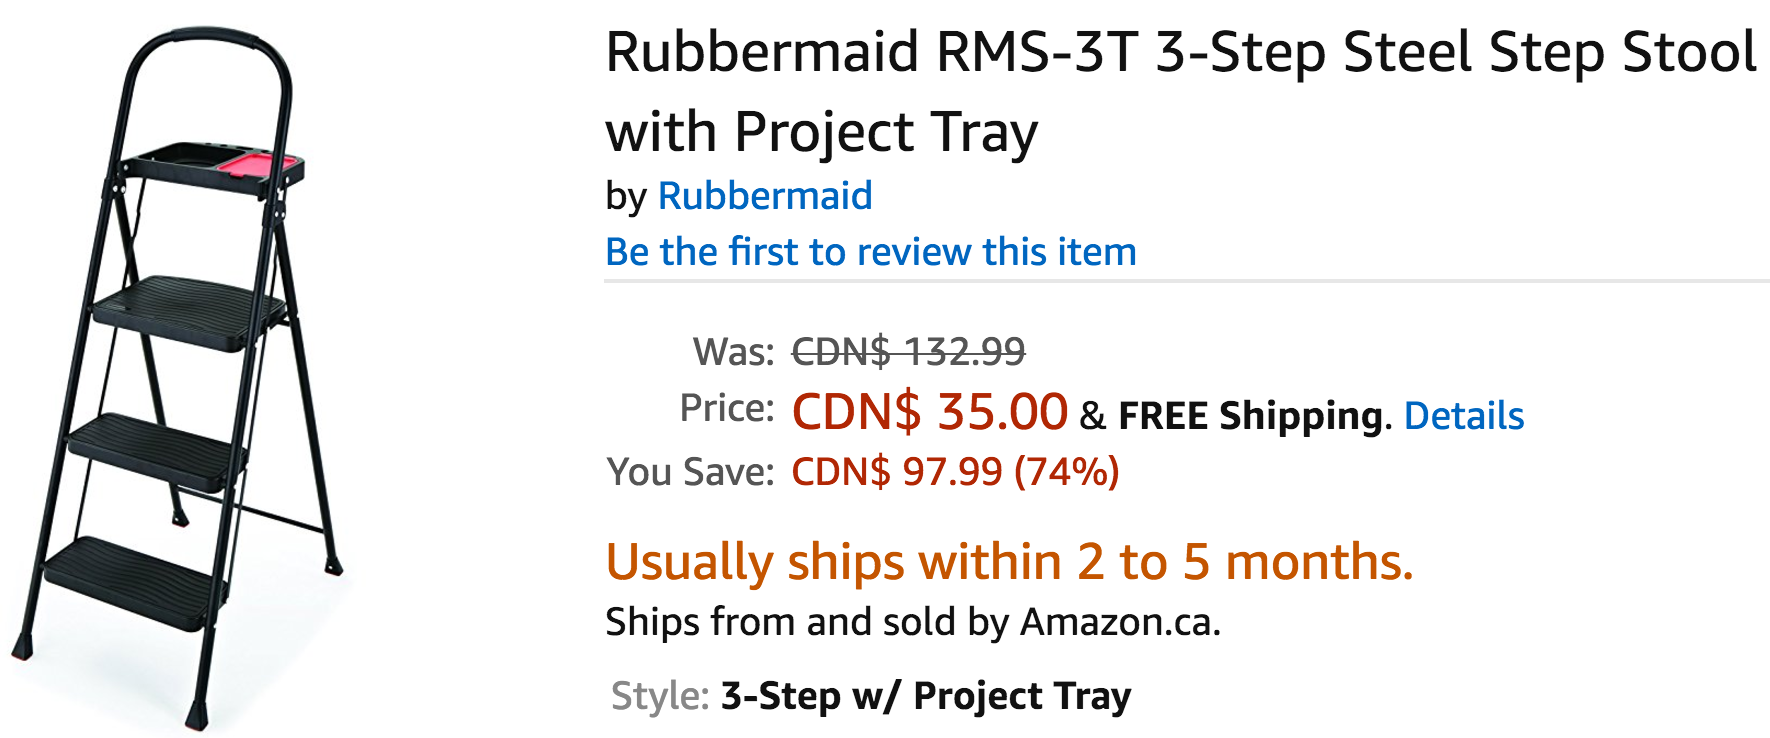 Amazon Canada Deals Save 74% on Rubbermaid 3-Step Steel Step Stool with Project Tray u0026 25% on Graco SnugRide Click Connect 35 Infant Car Seat  sc 1 st  Smart Canucks & Amazon Canada Deals: Save 74% on Rubbermaid 3-Step Steel Step ... islam-shia.org